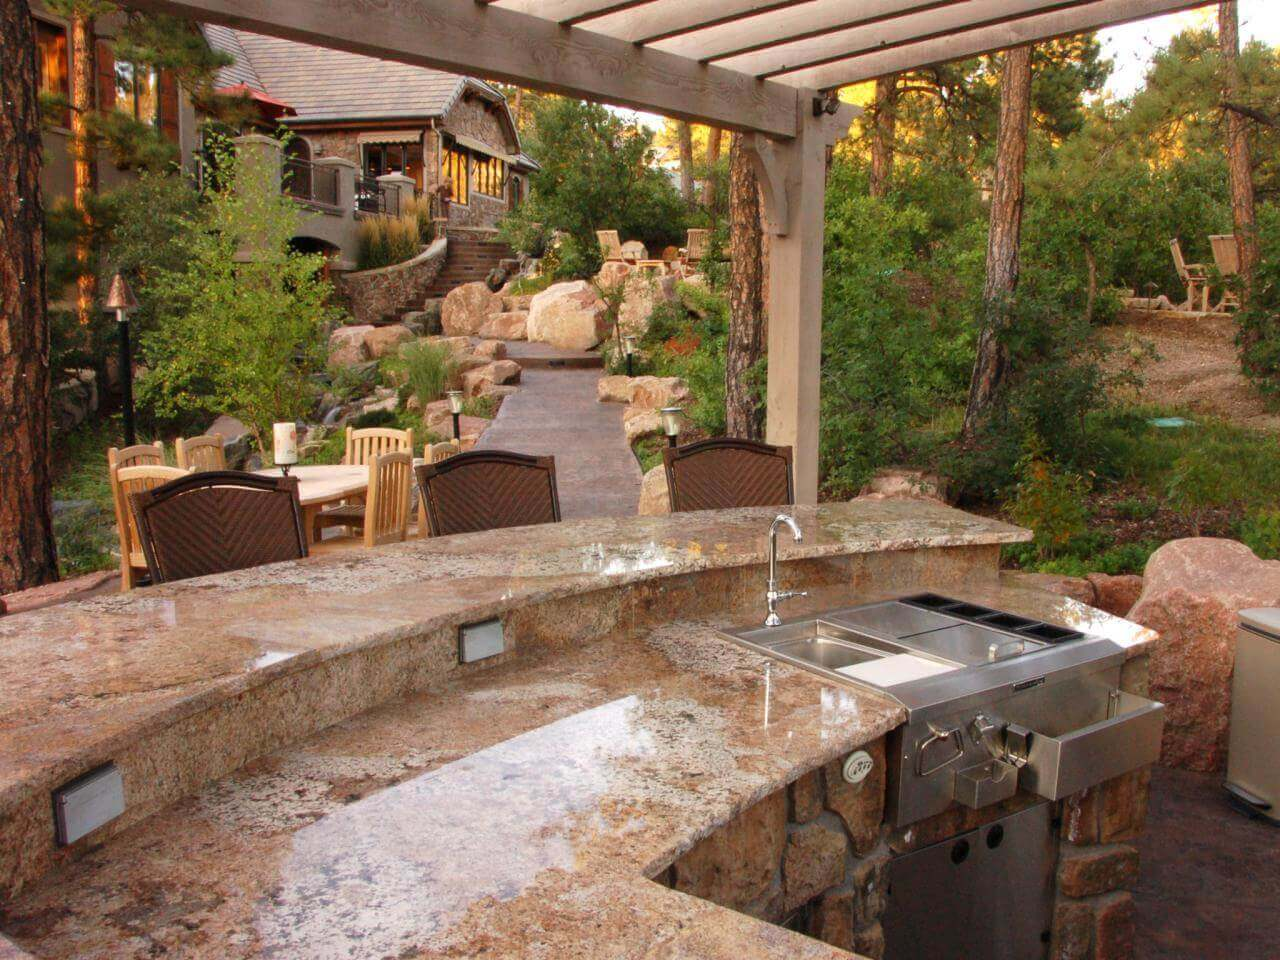 Give new life to your backyard barbecues this summer with outdoor kitchen decorating ideas. Marble countertops and stainless steel appliances give this outdoor kitchen idea a modern feel. Herb garden fill with trees and flowers give the space a natural feel